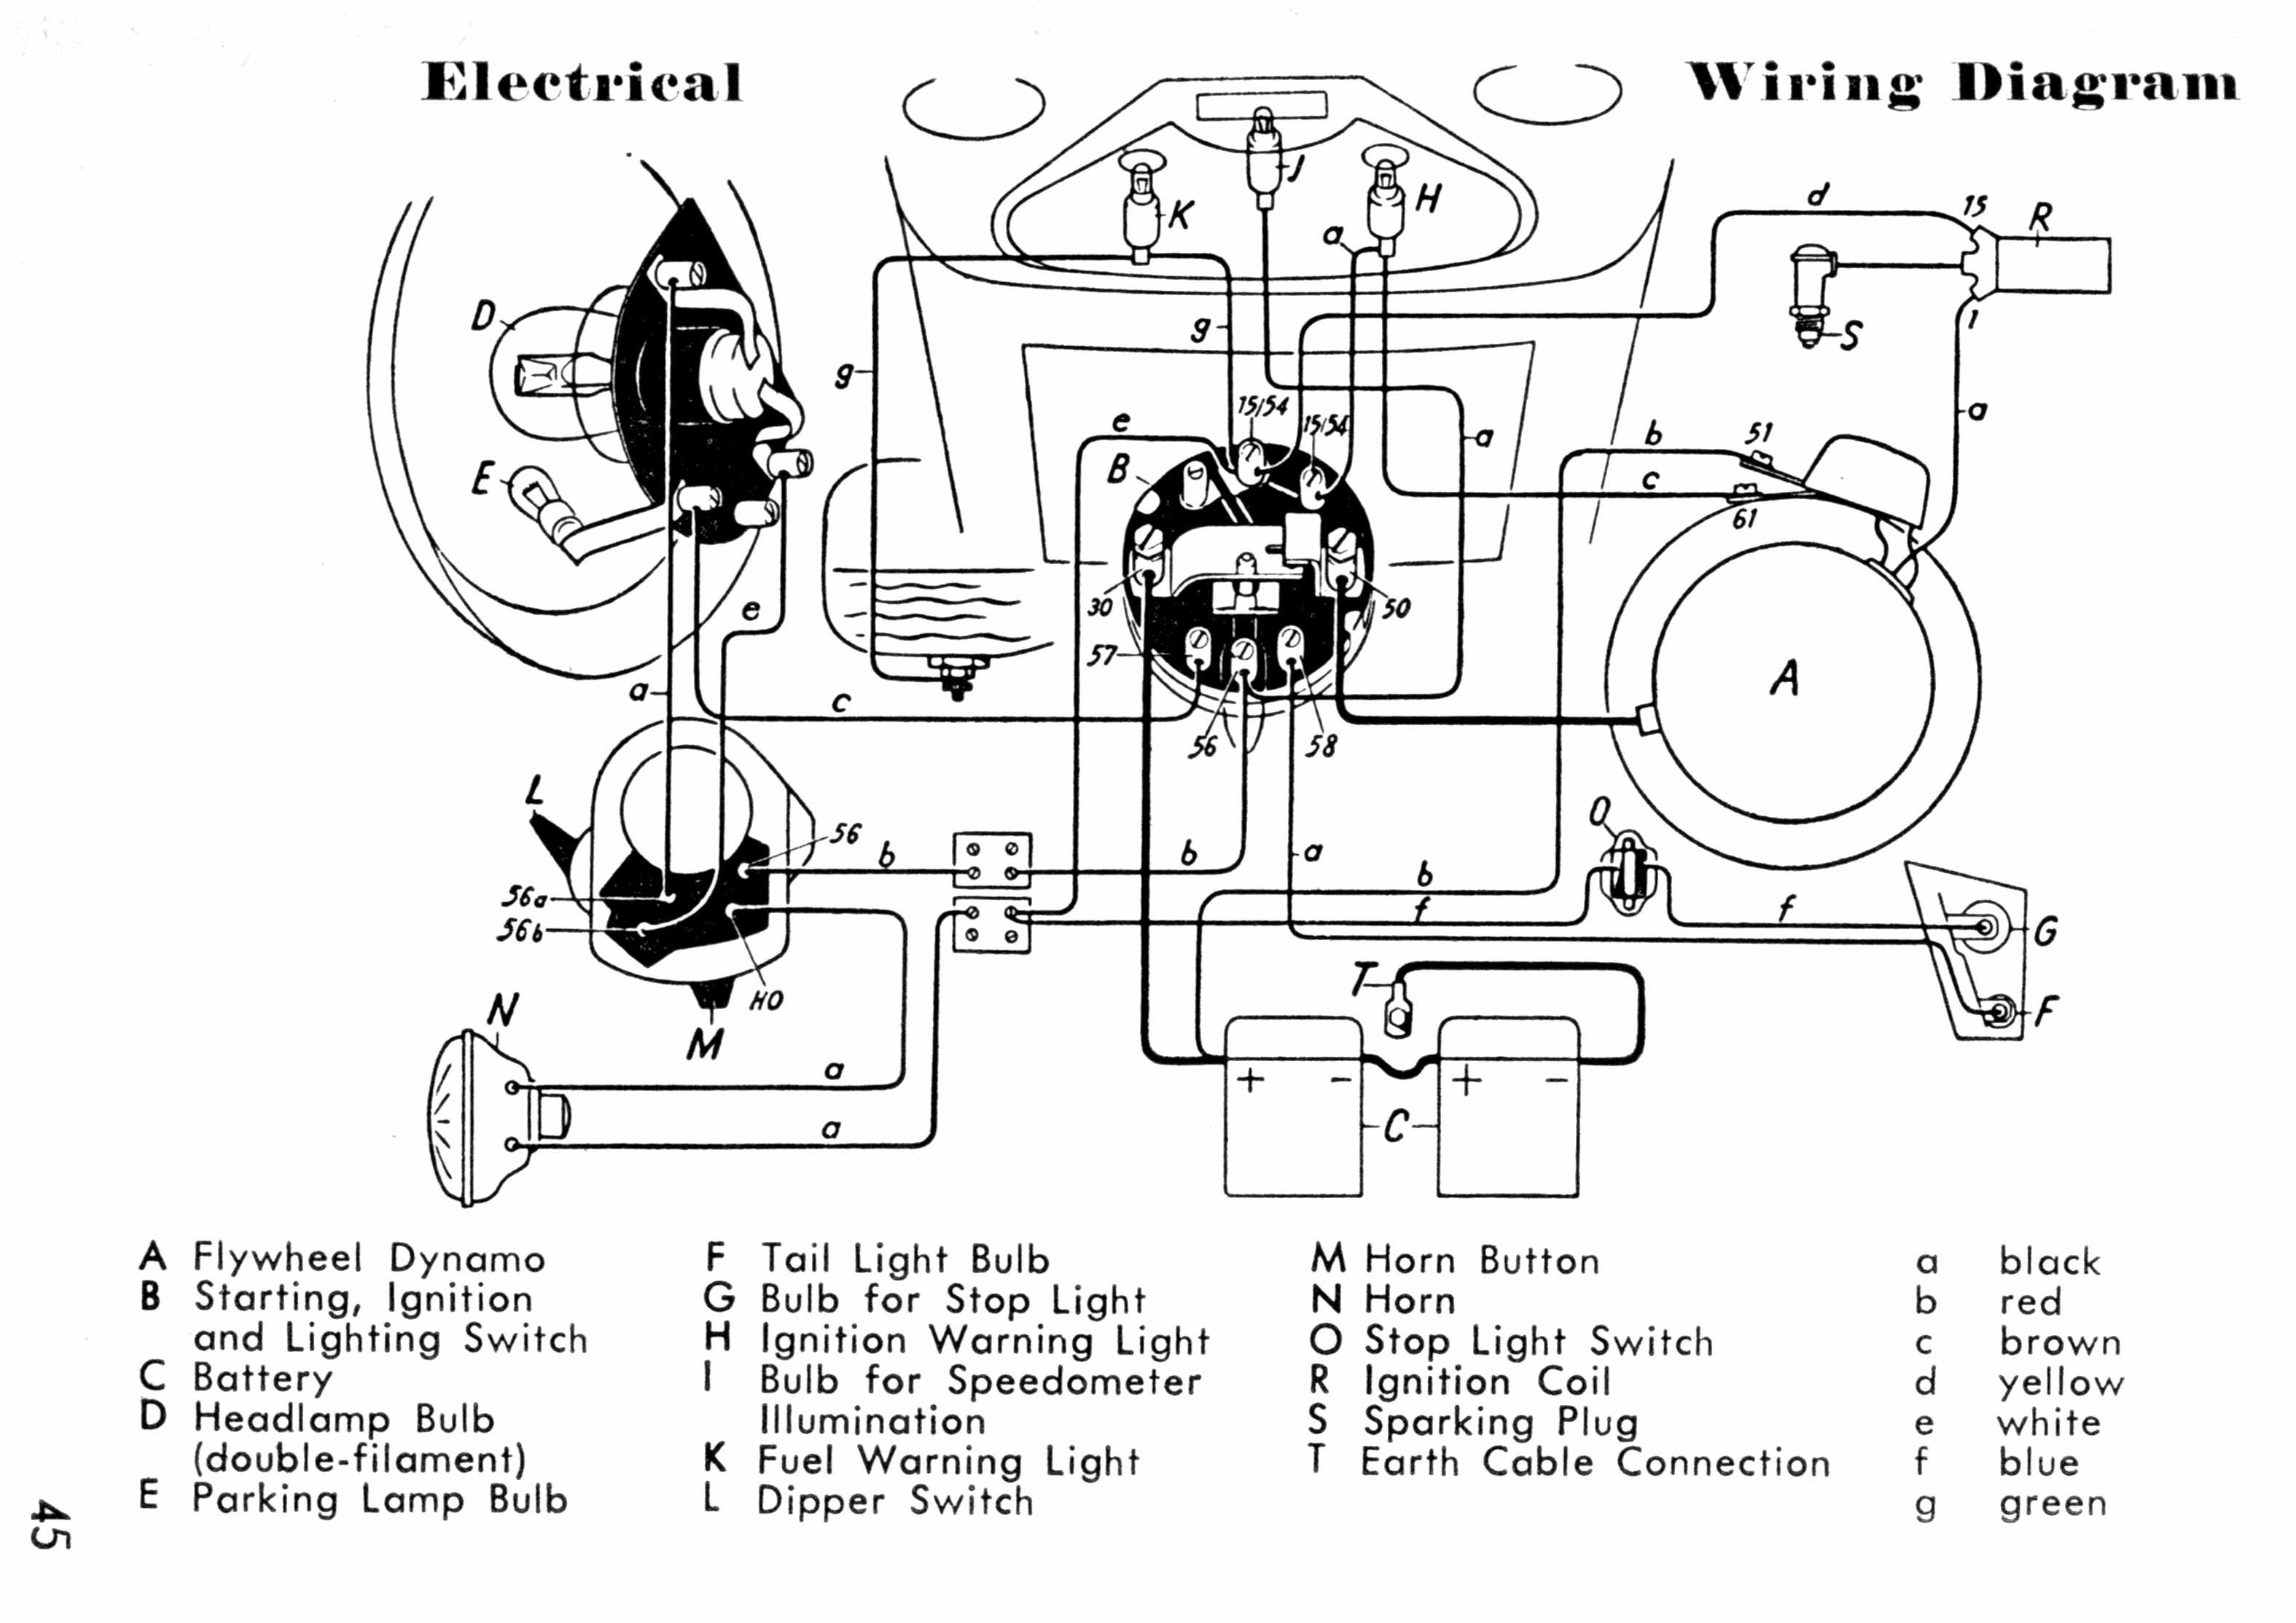 hight resolution of 50cc motorcycle engine diagram motor repalcement parts and diagramschematic electric scooter wiring diagram closet electric 50cc